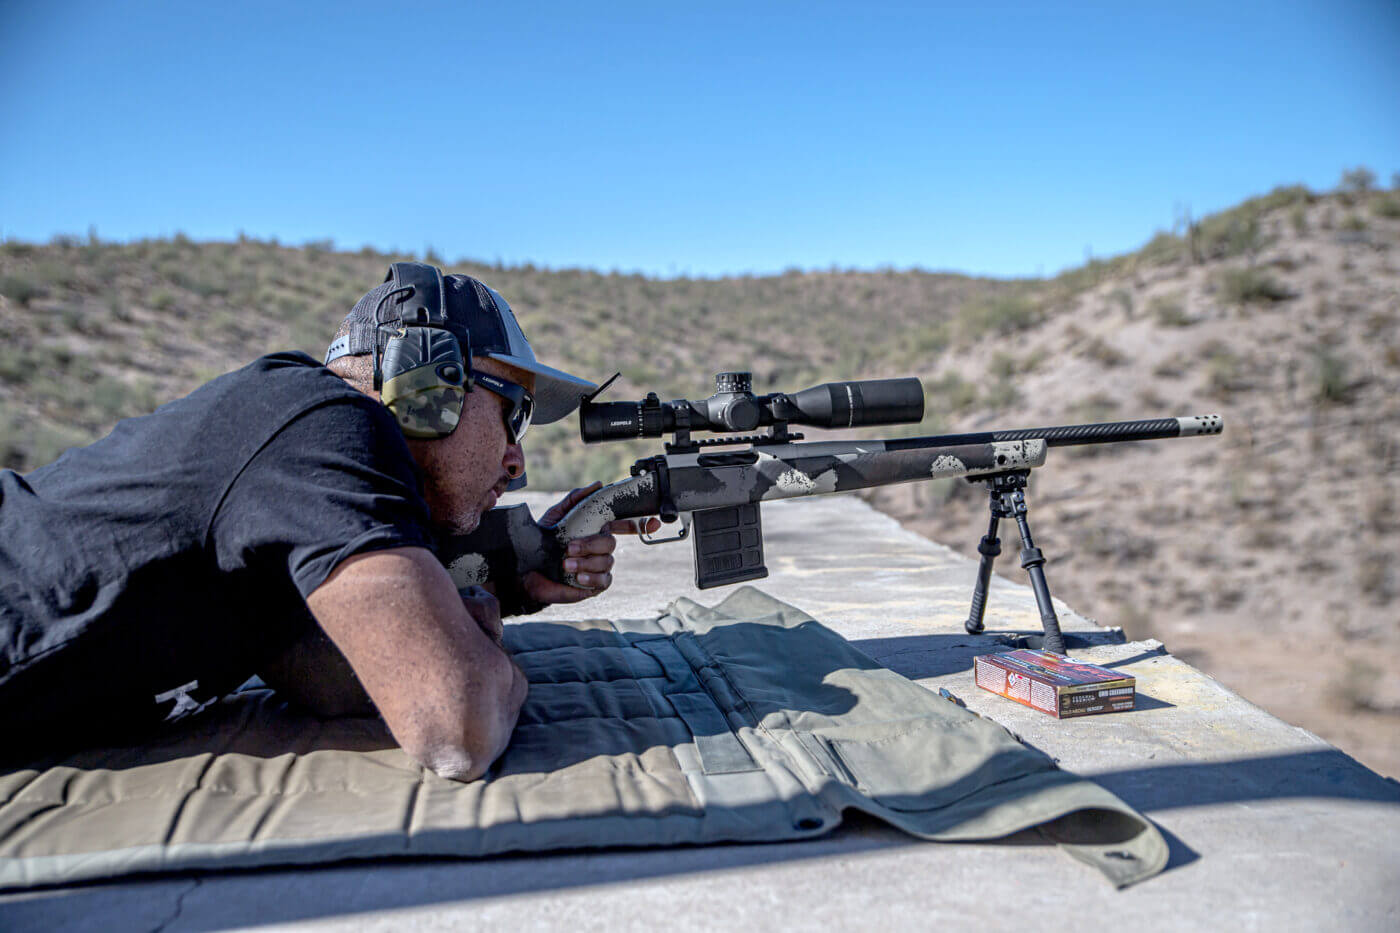 Shooting a Model 2020 Waypoint rifle at 1,000 yards